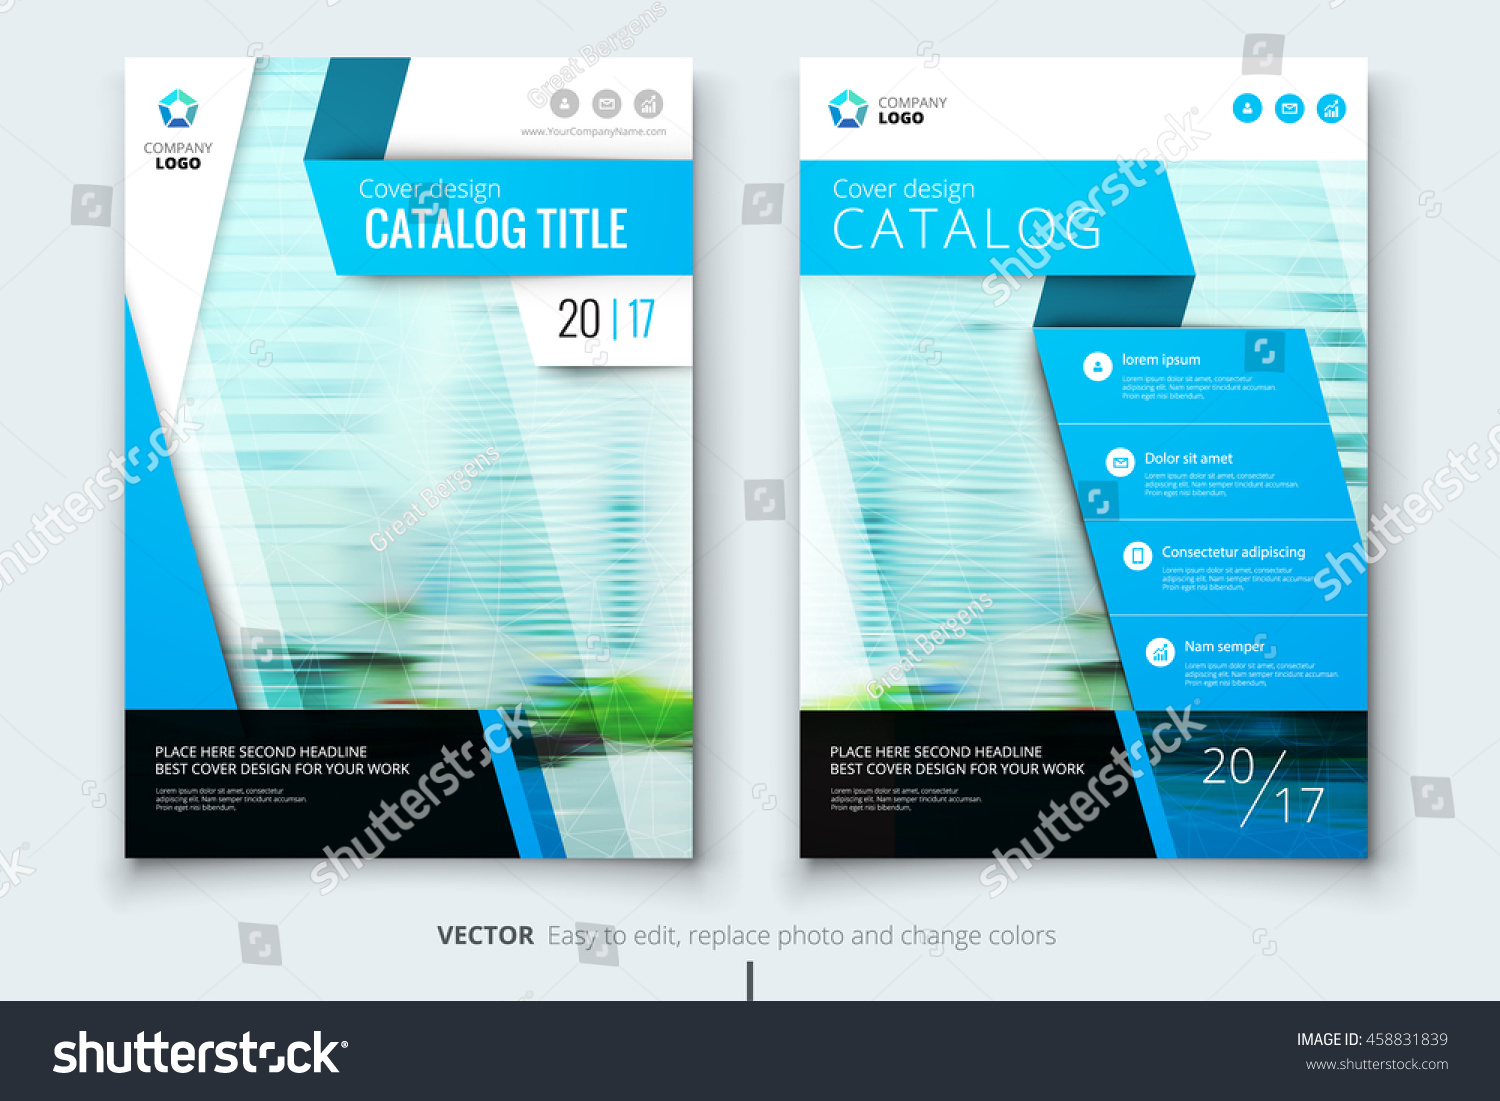 Blue Catalog Cover Design Corporate Business Stock Vector Royalty